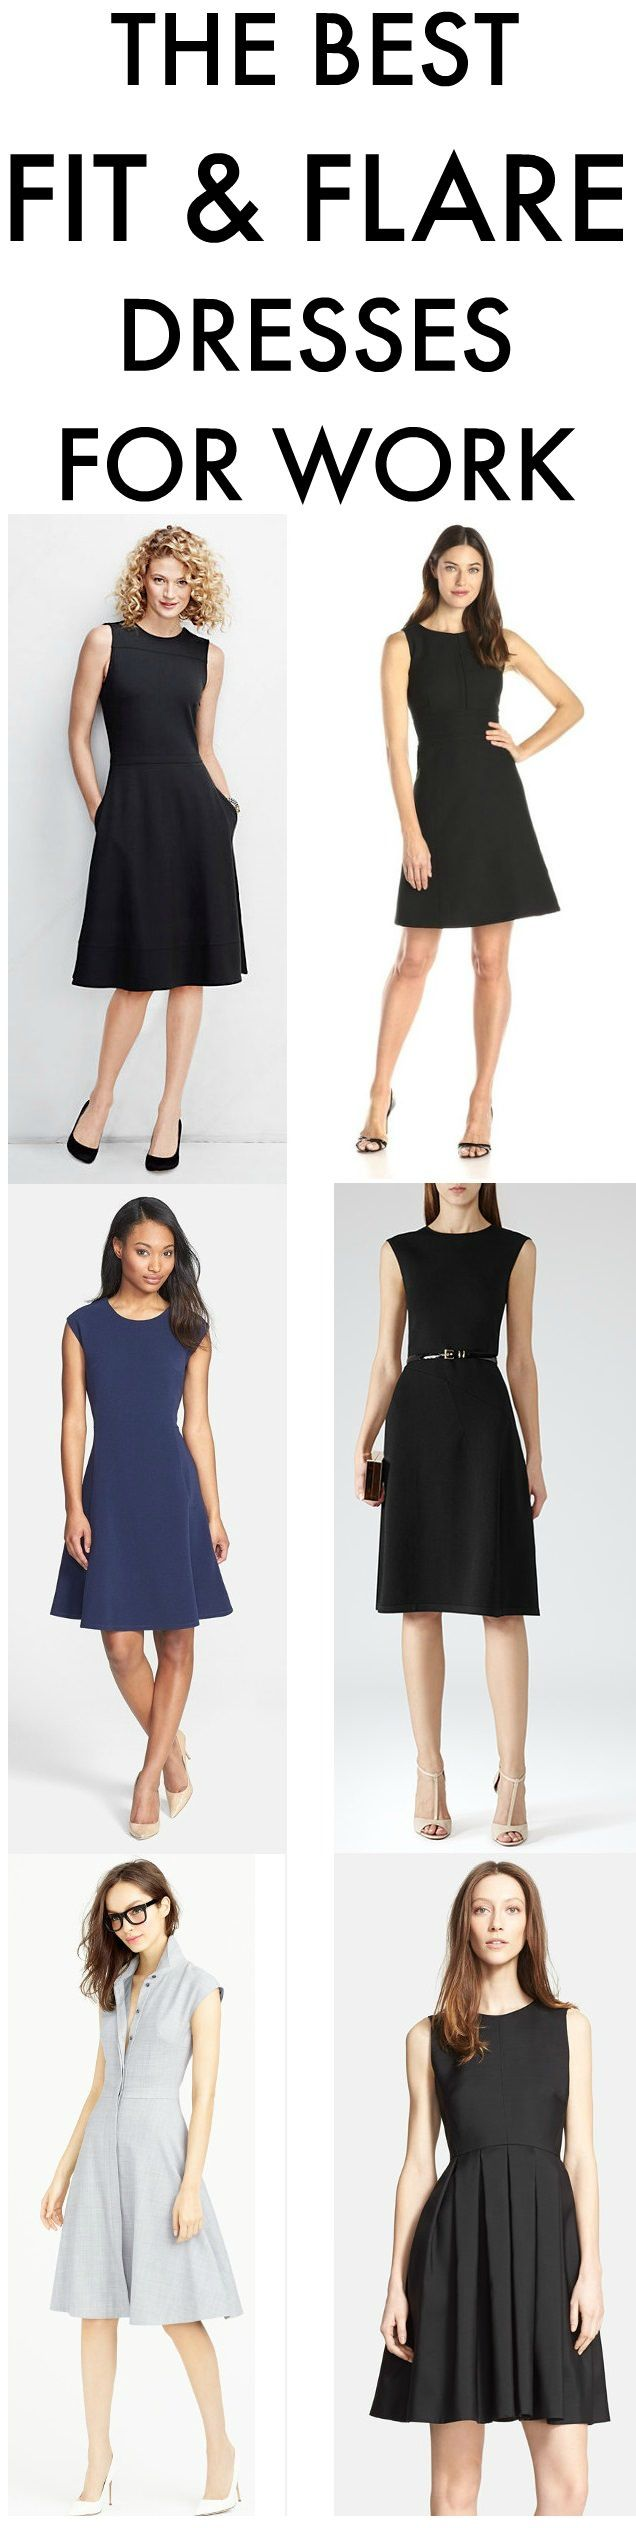 Fit and flare dresses make great work outfits -- we rounded up some of the  best for all shapes and sizes. Which are your favorite flared dresses for  work  672a86905